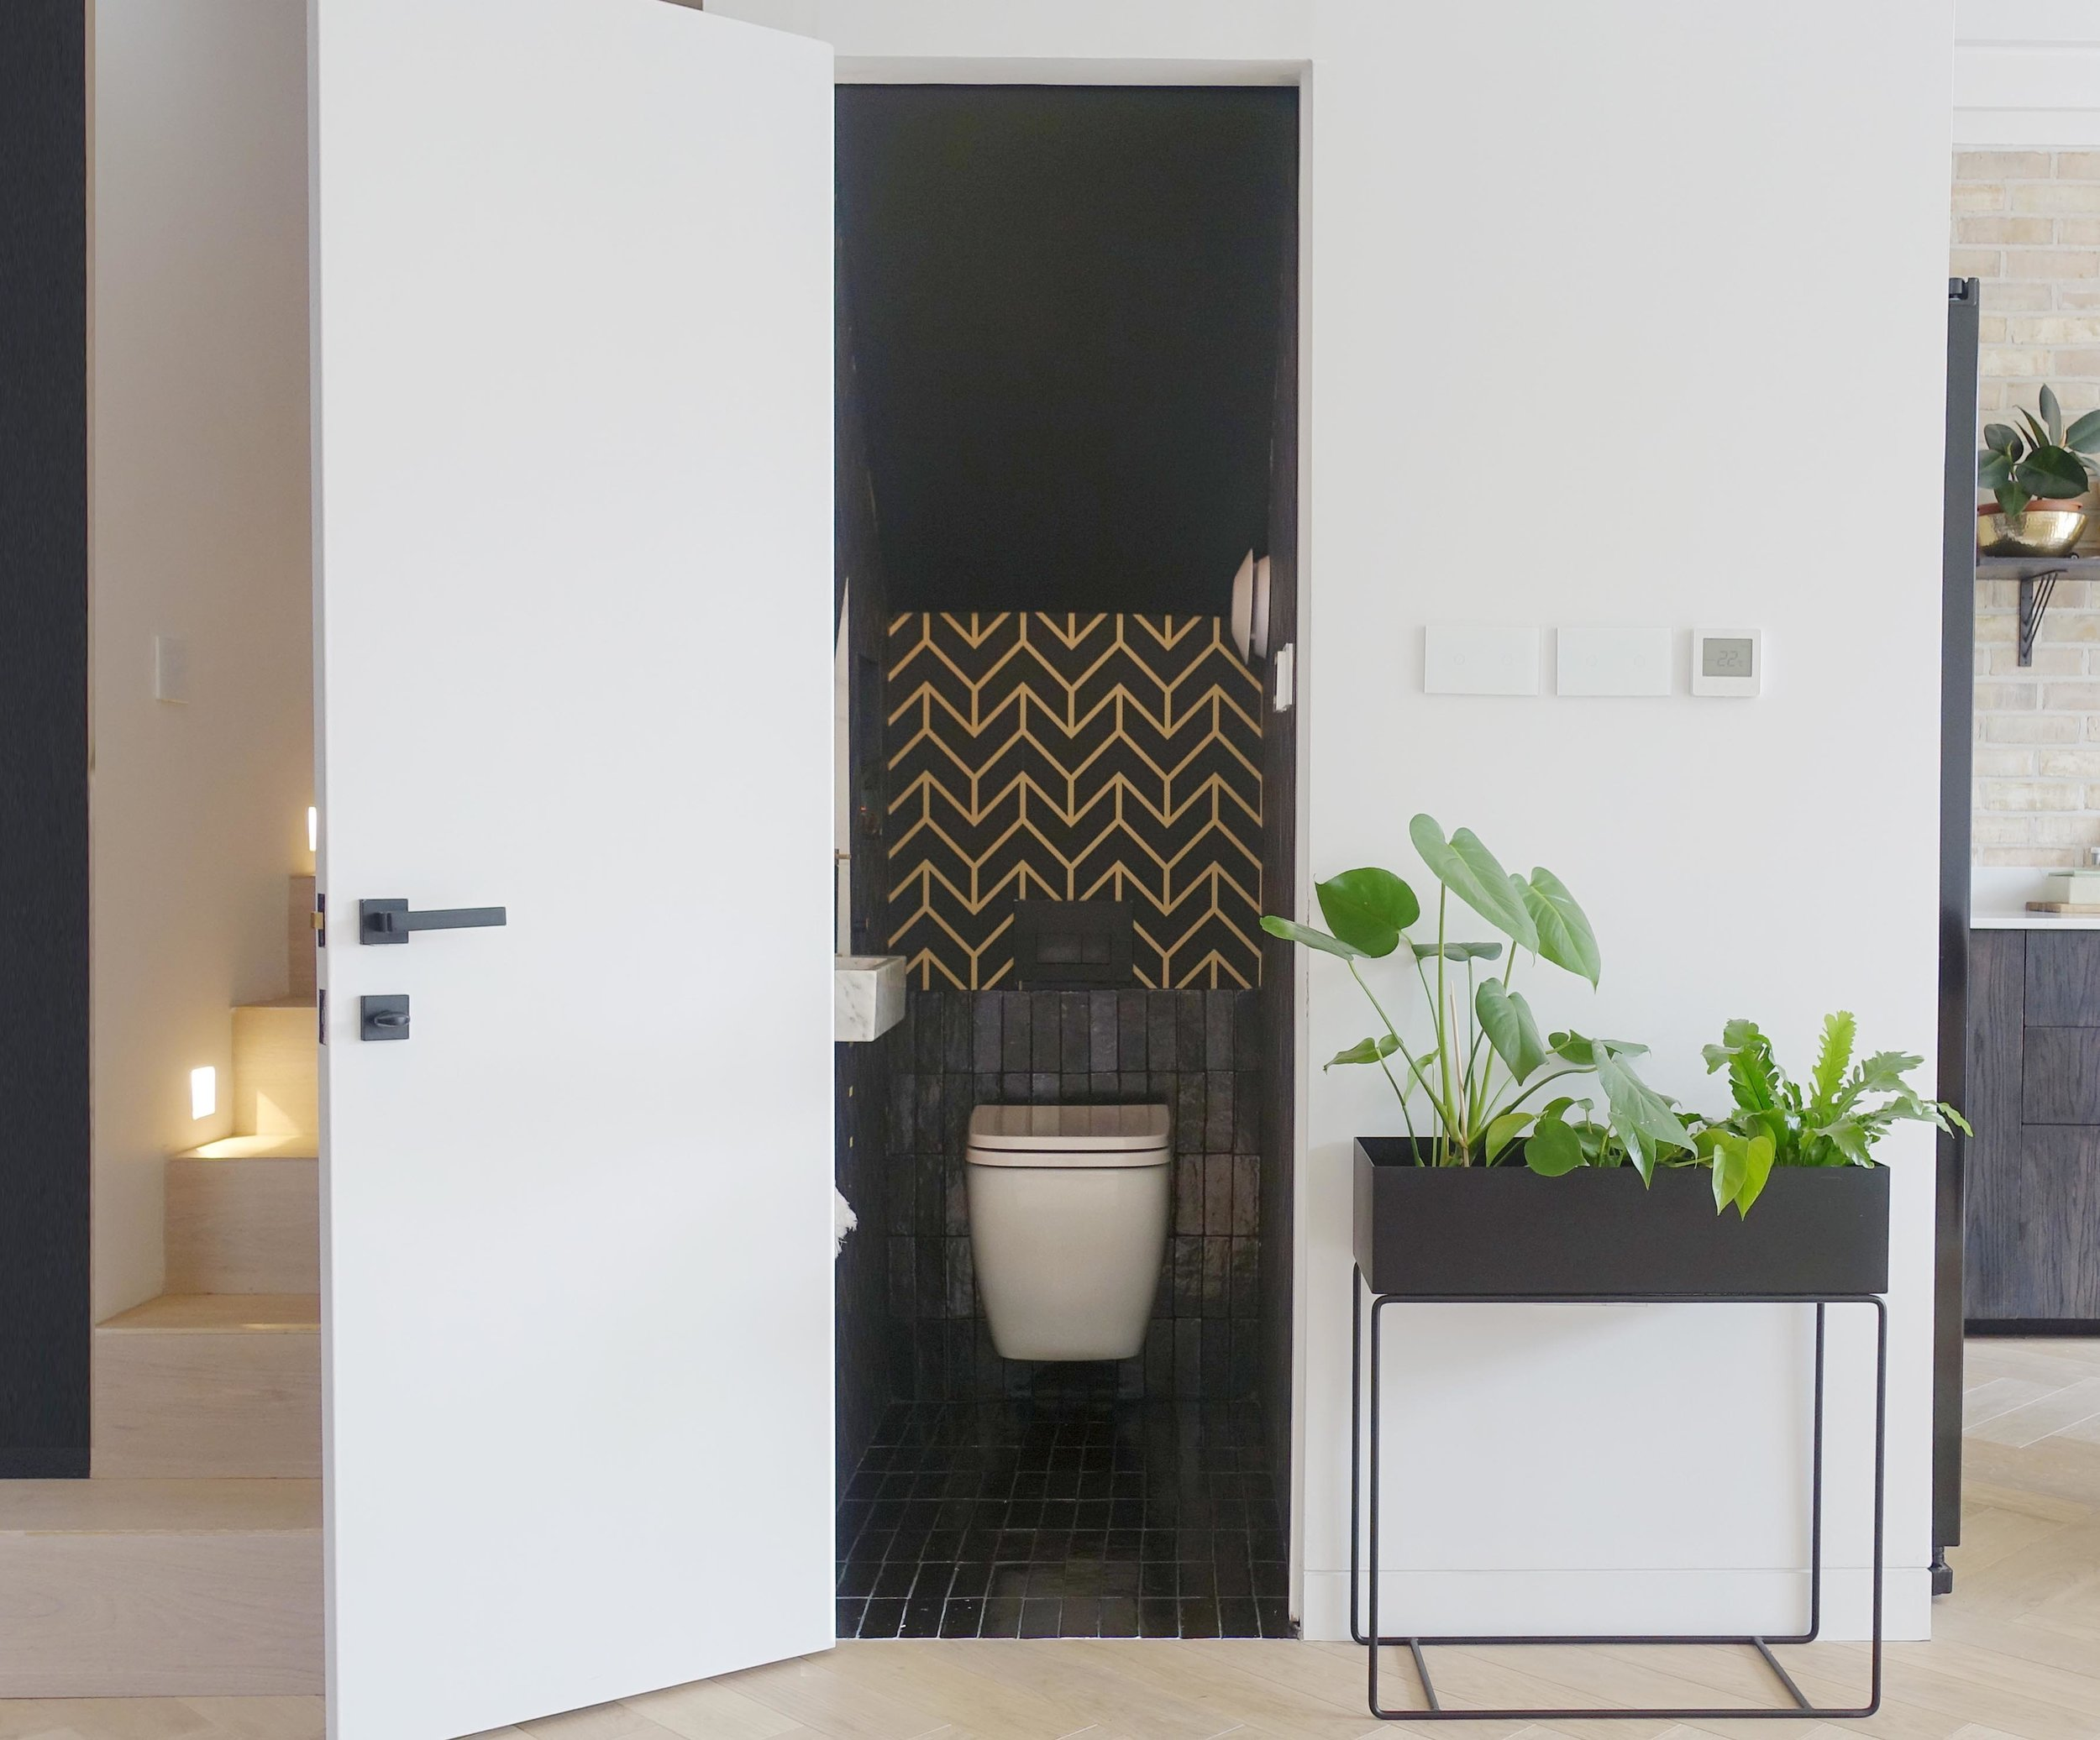 The tiny 114cm by 68cm space has been transformed into a useable guest WC